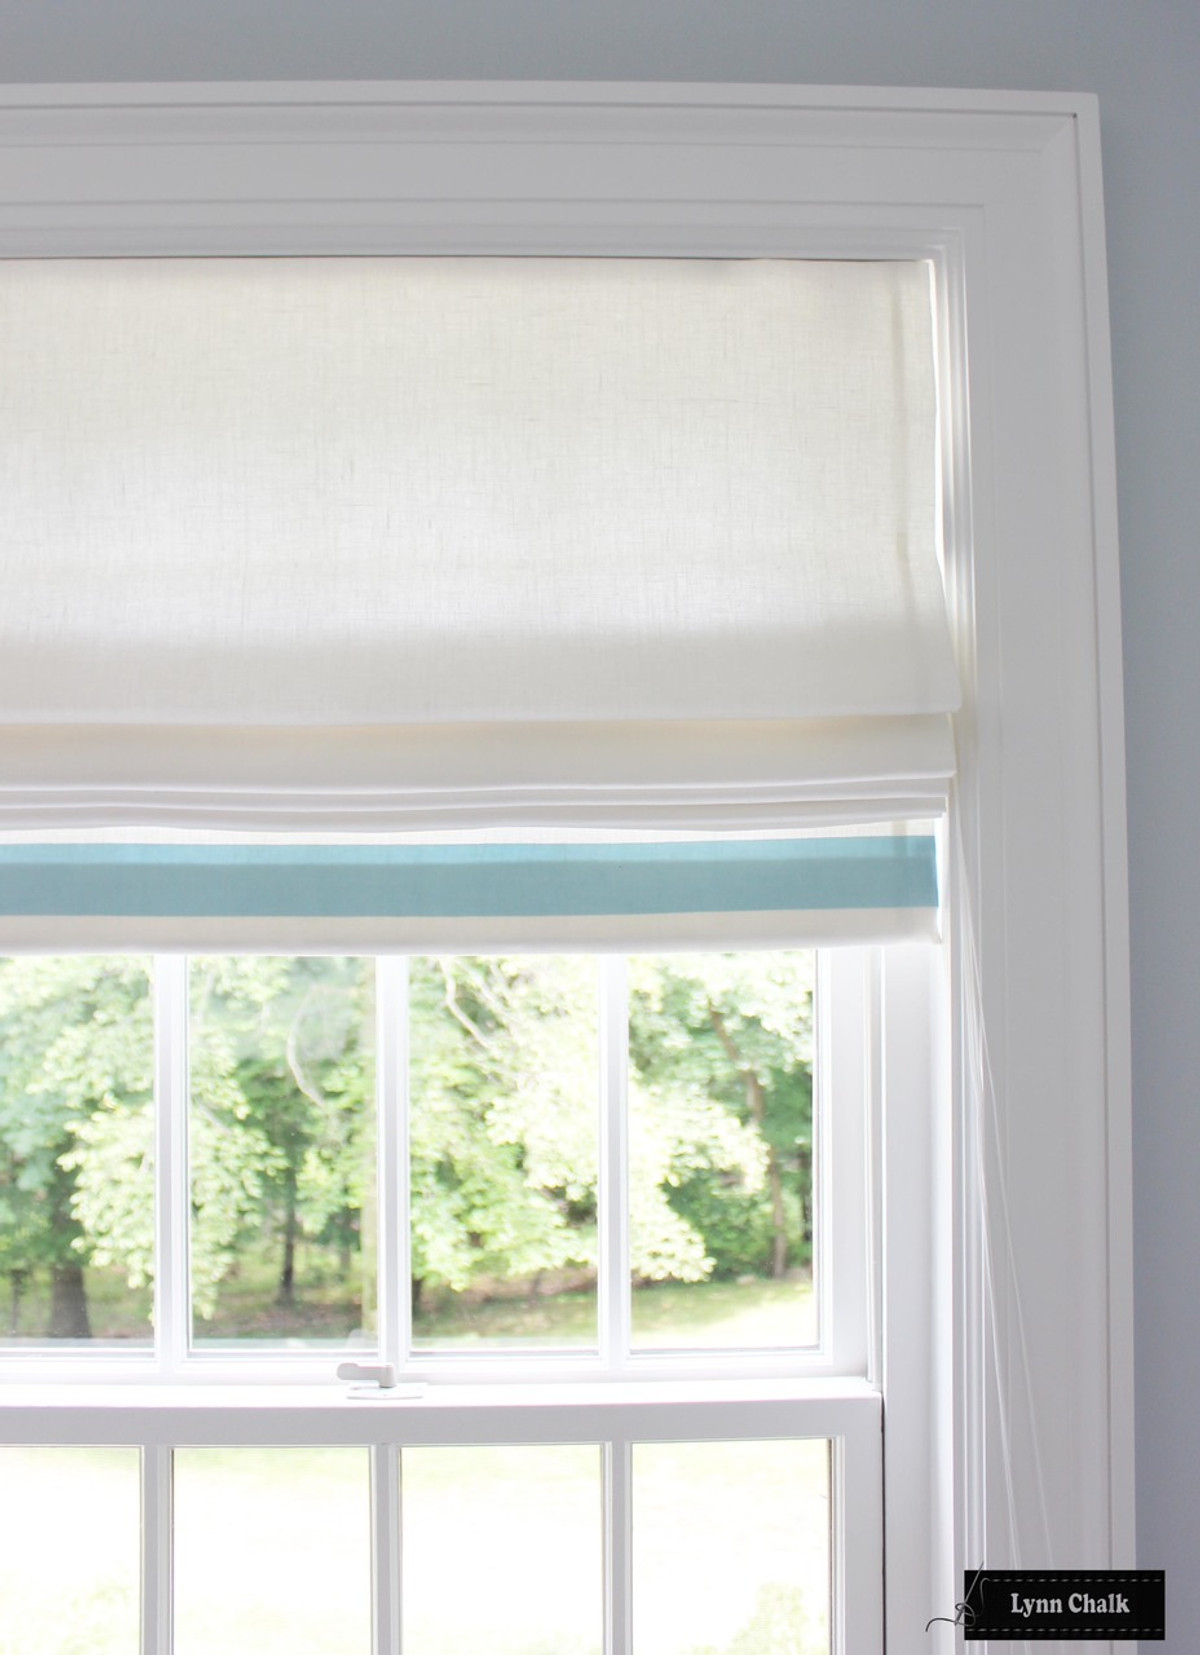 Roman Shades White Linen With Trim On Sides And Bottom Shown In Samuel And Son Grosgrain Ribbon Trim In Lilac